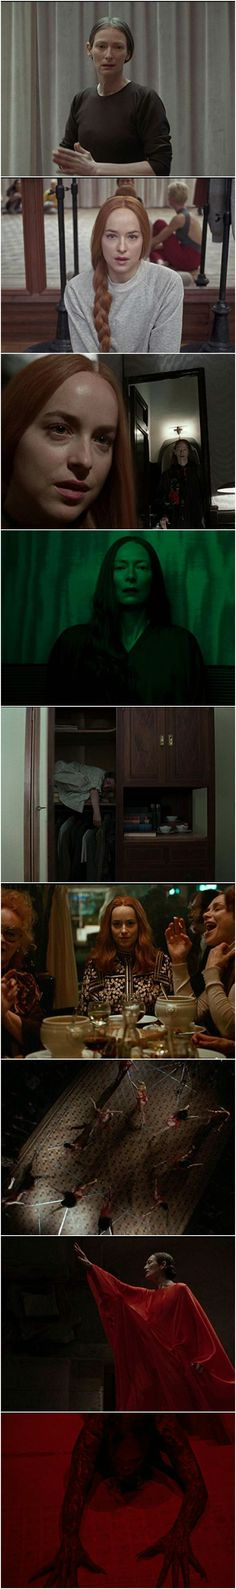 Suspiria cinematography Best Picture For cinematography wallpaper For . Cinematic Photography, Film Photography, Lou Le Film, The Shining, Requiem For A Dream, Roger Deakins, Light Film, Best Cinematography, Movie Shots